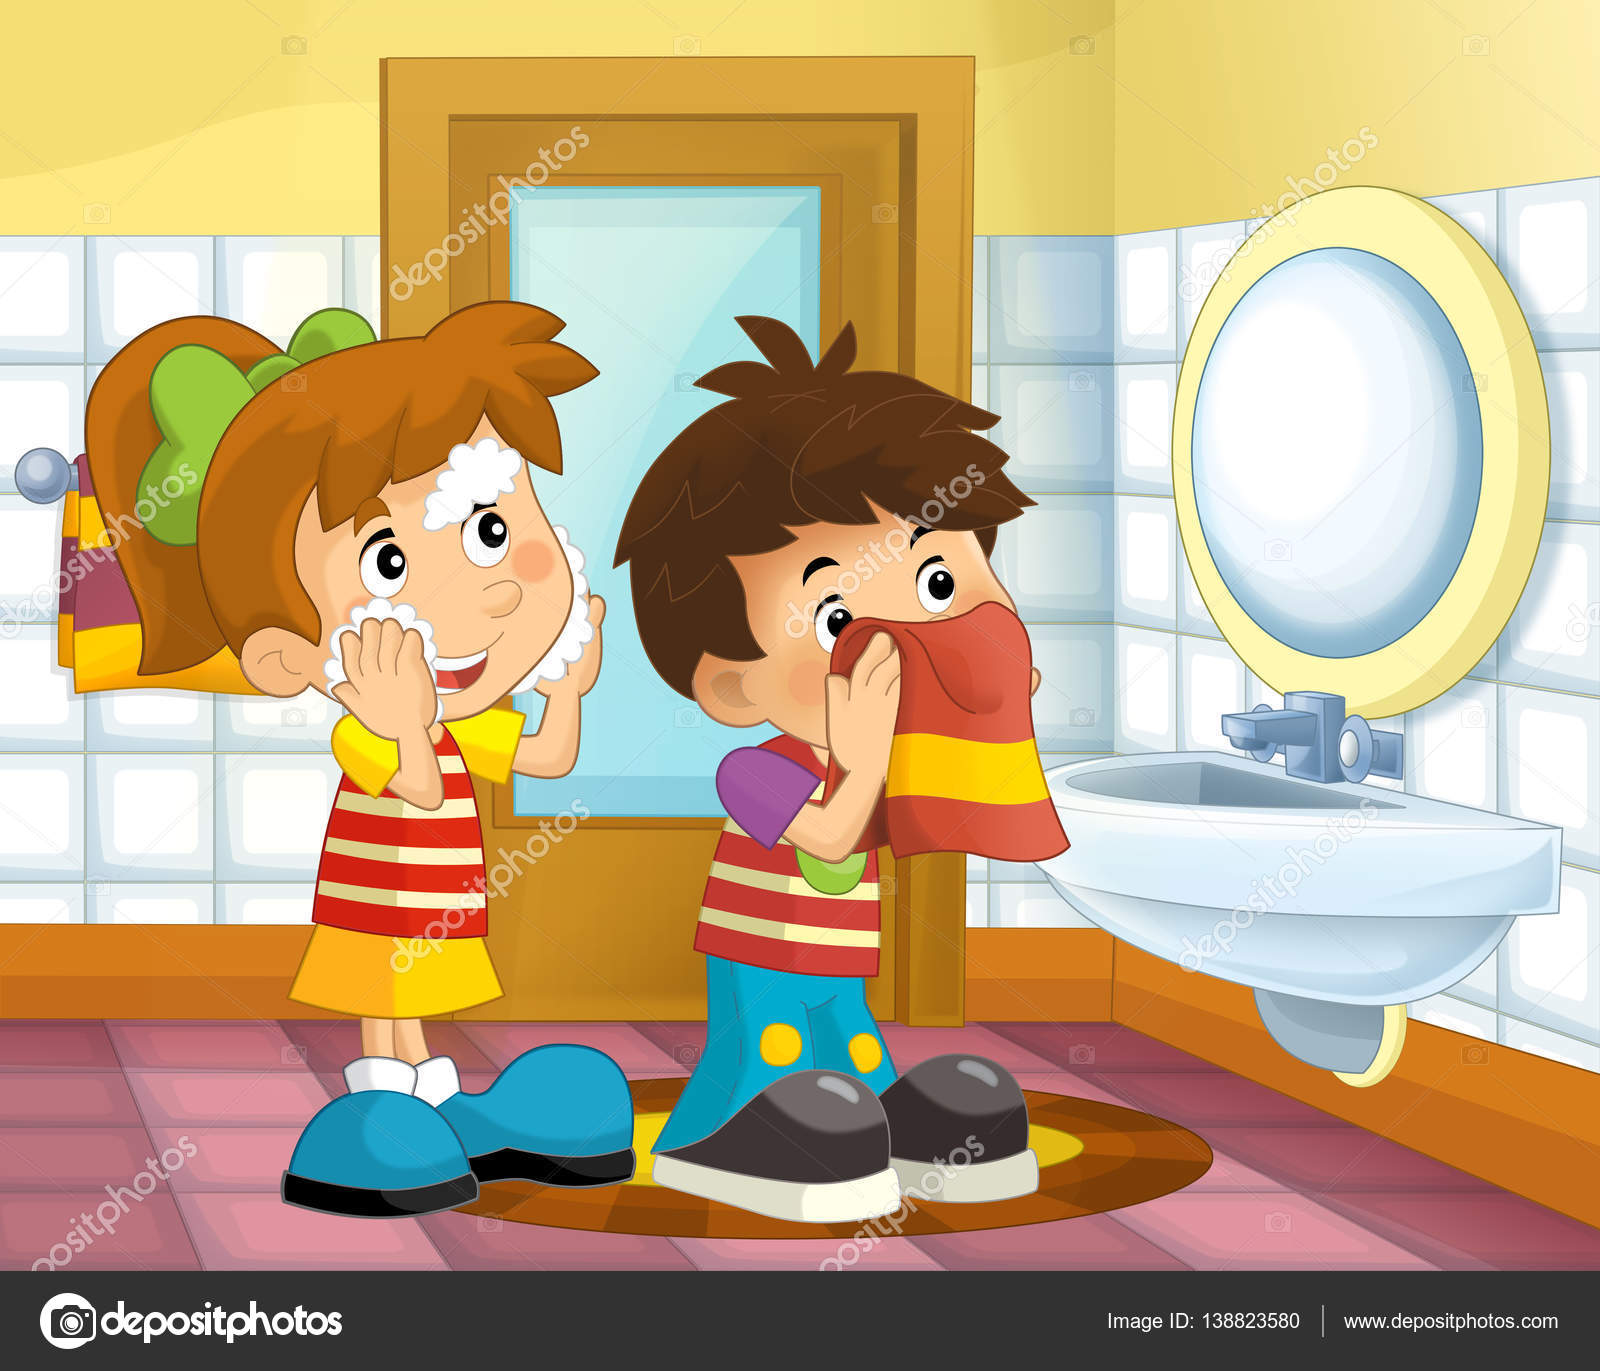 Cartoon Pictures Of Bathrooms: Stock Photo © Illustrator